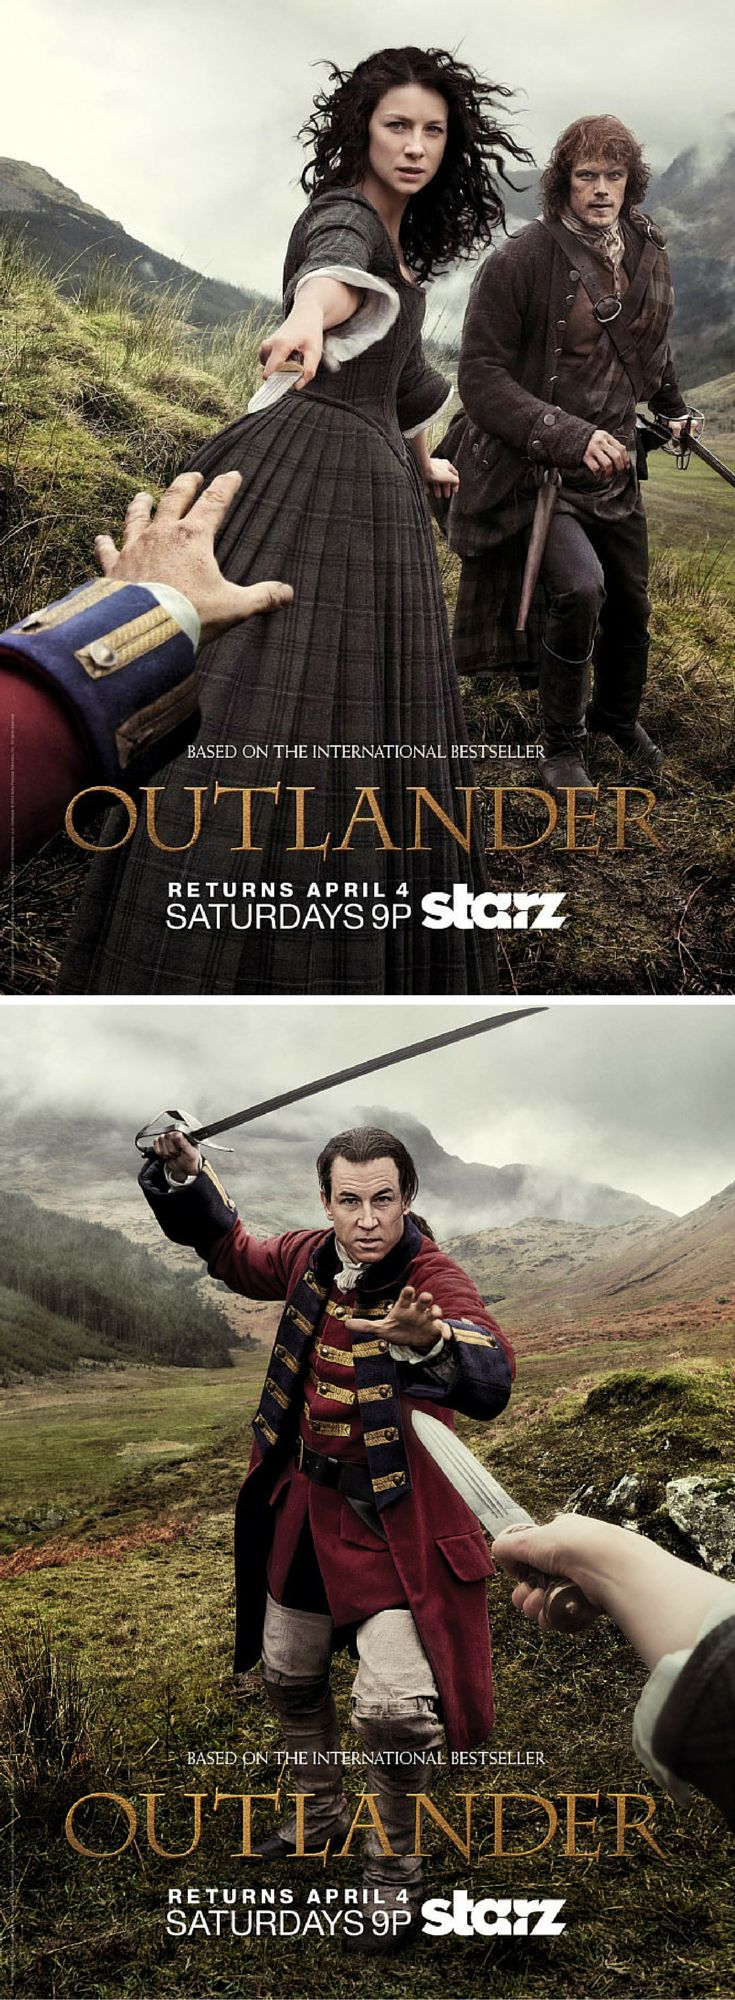 New 'Outlander' Posters: 5 Details We're Obsessing Over BookBub